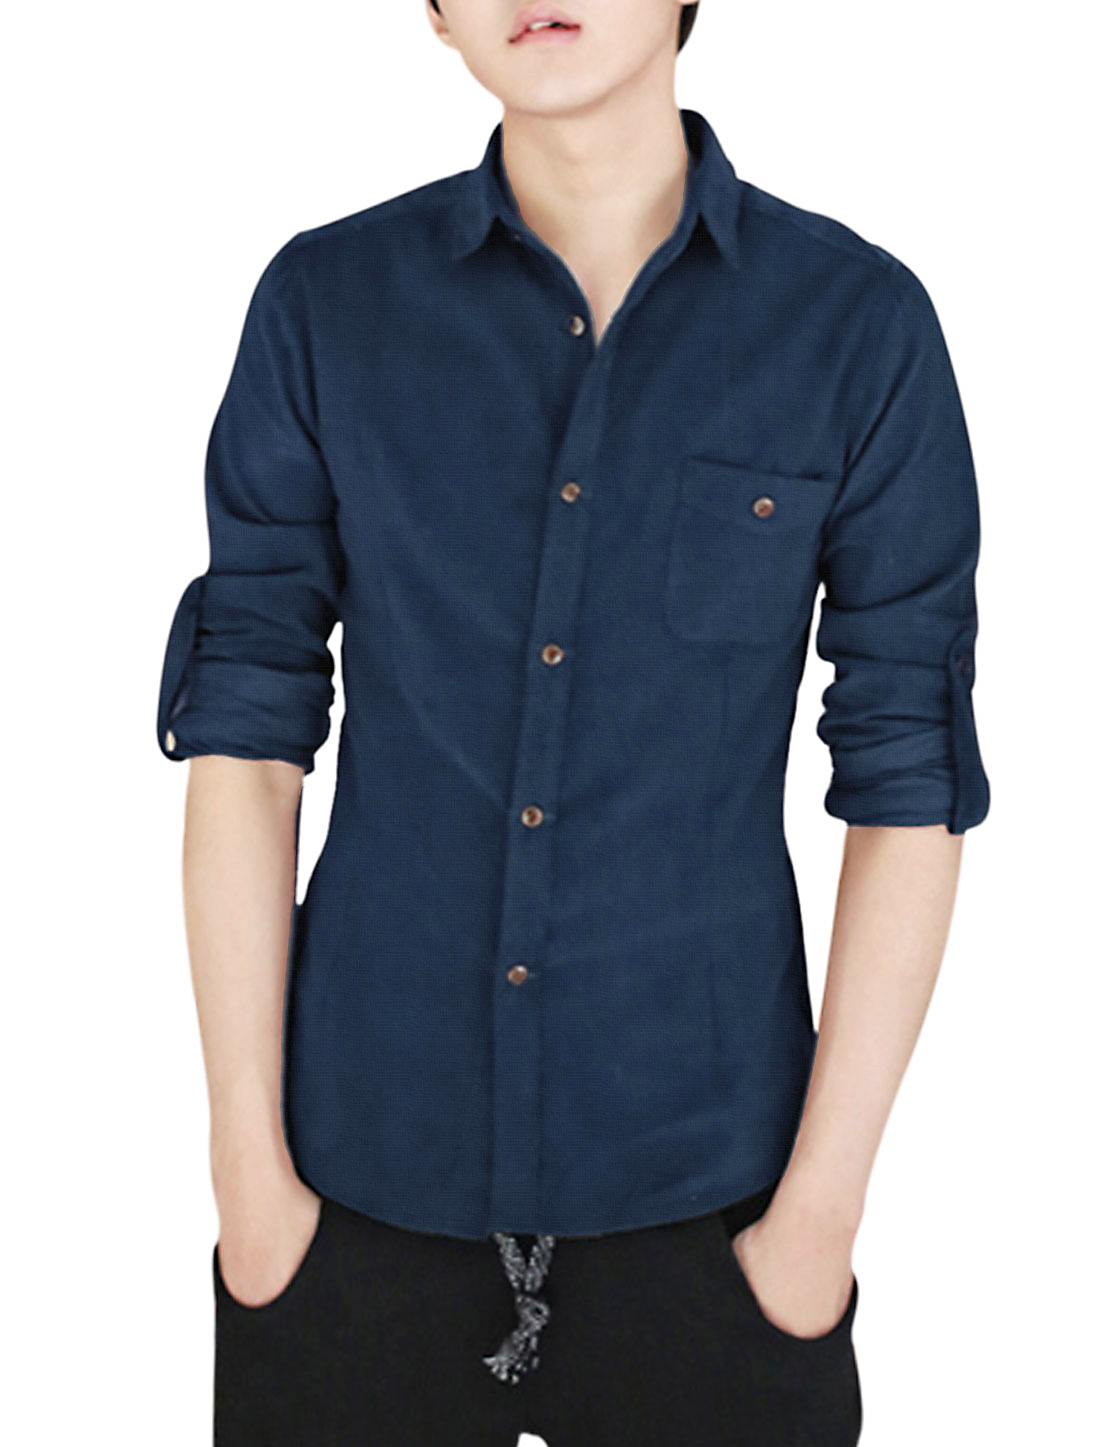 Man Button Closed One Bust Pocket Navy Blue Corduroy Shirt S